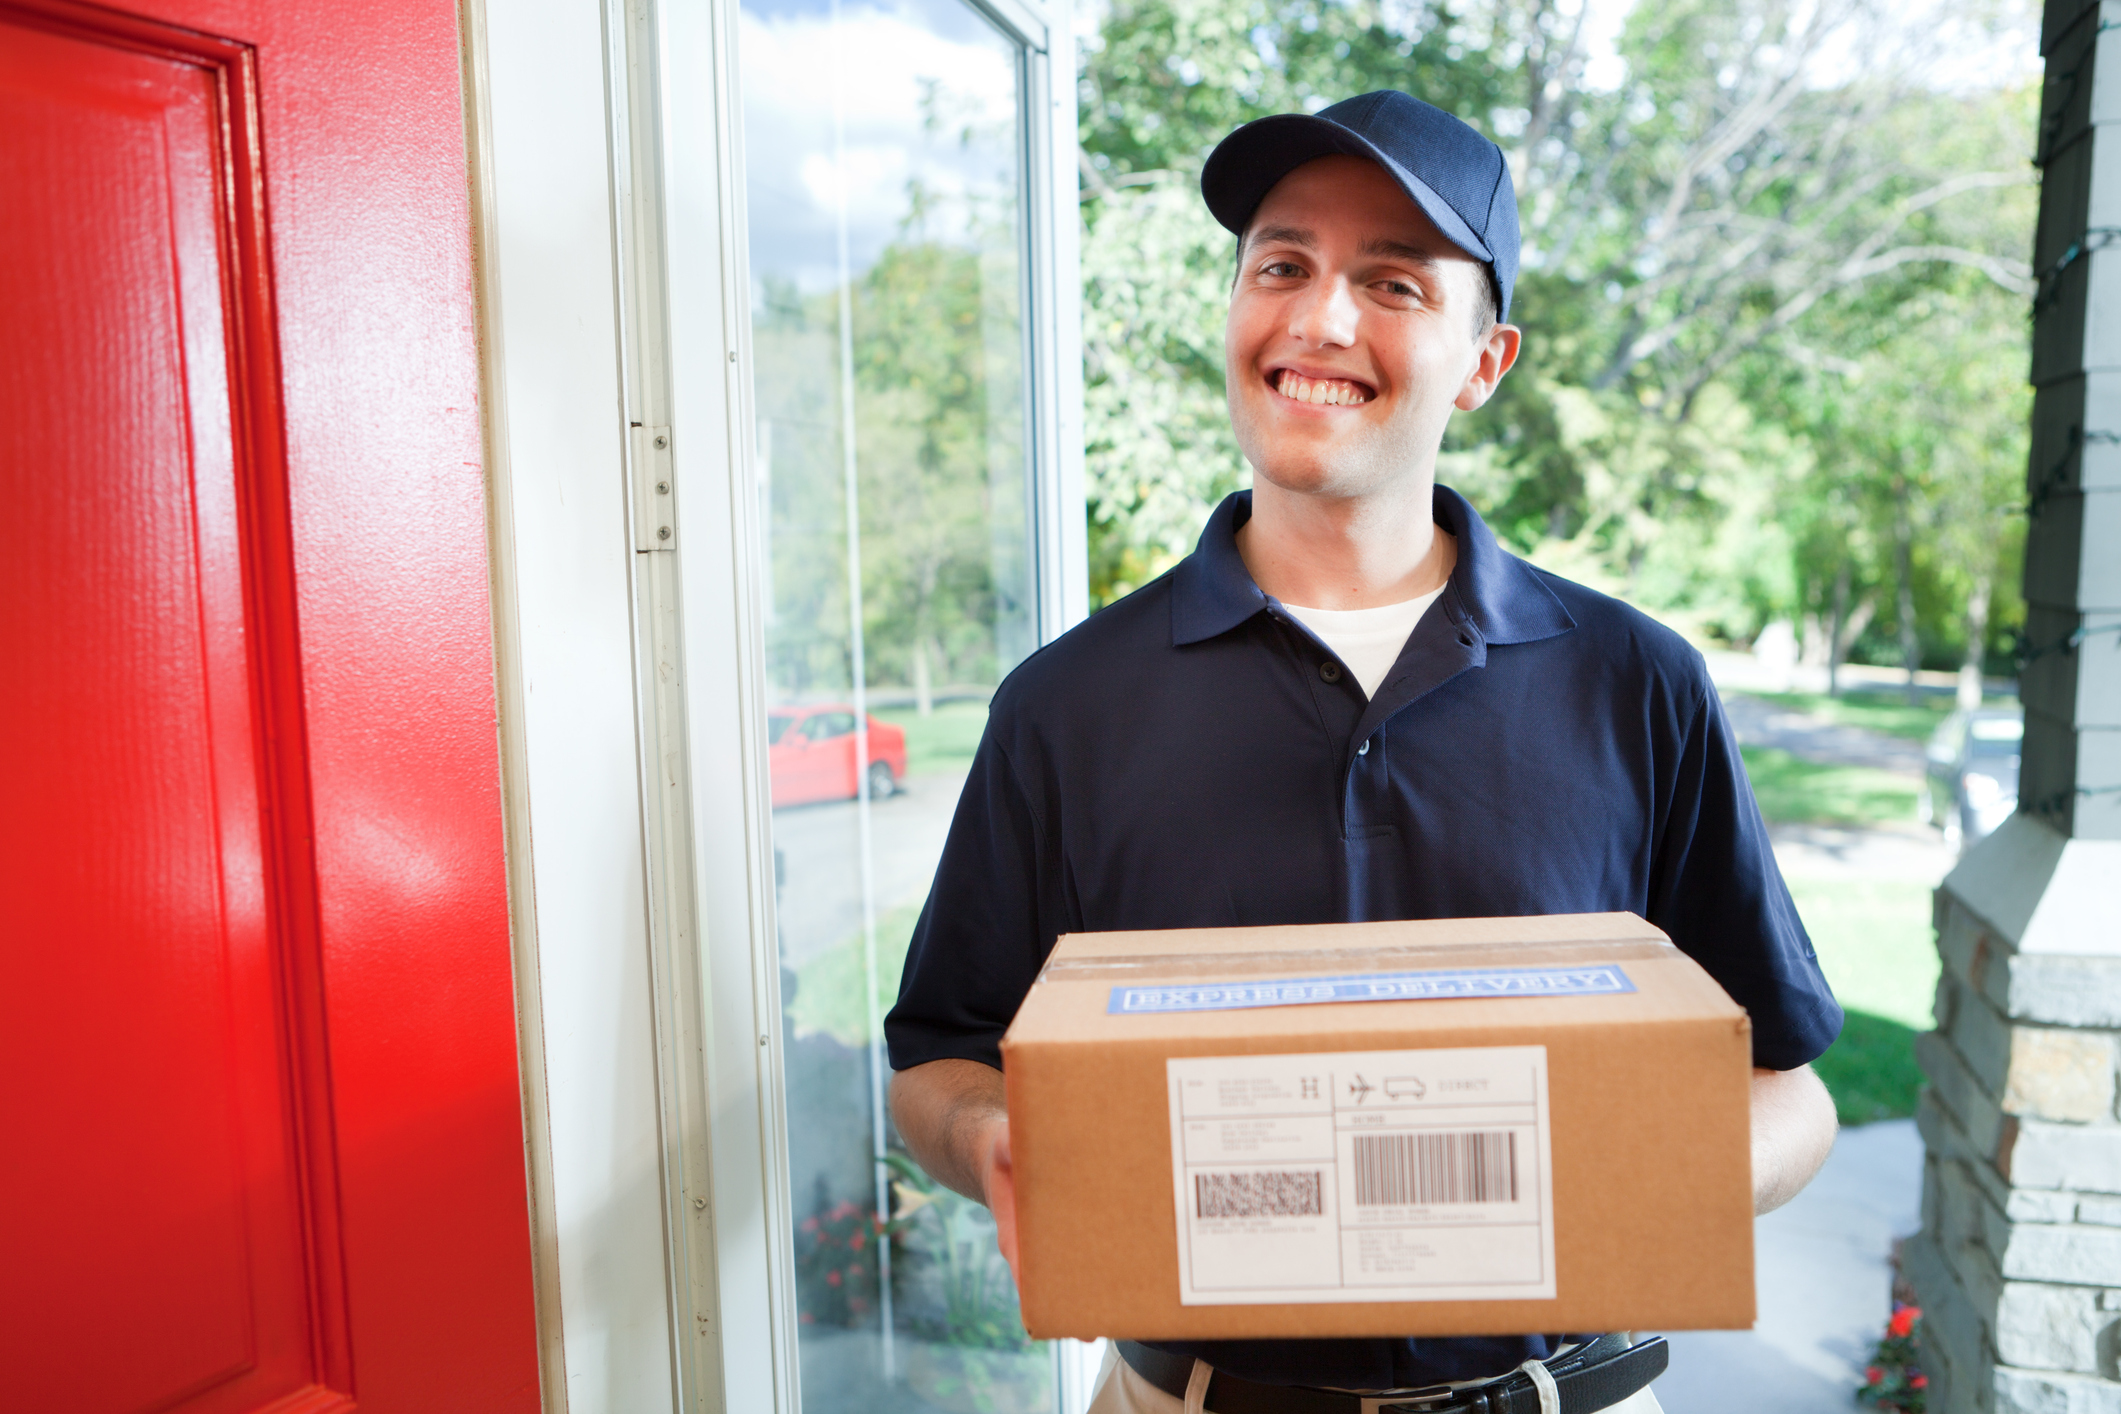 your orders are delivered - And finally....your customers receive their orders quickly and accurately. Overseas import docs are automated by us to avoid any delays. You can receive realtime updates on parcel tracking info which you can share with you customers (if we are integrated with your shopping cart or marketplace). We can't guarantee a smile from the delivery driver but we do use top couriers like dpd, fedex, dhl alongside Royal Mail to ensure your customers get a great service.